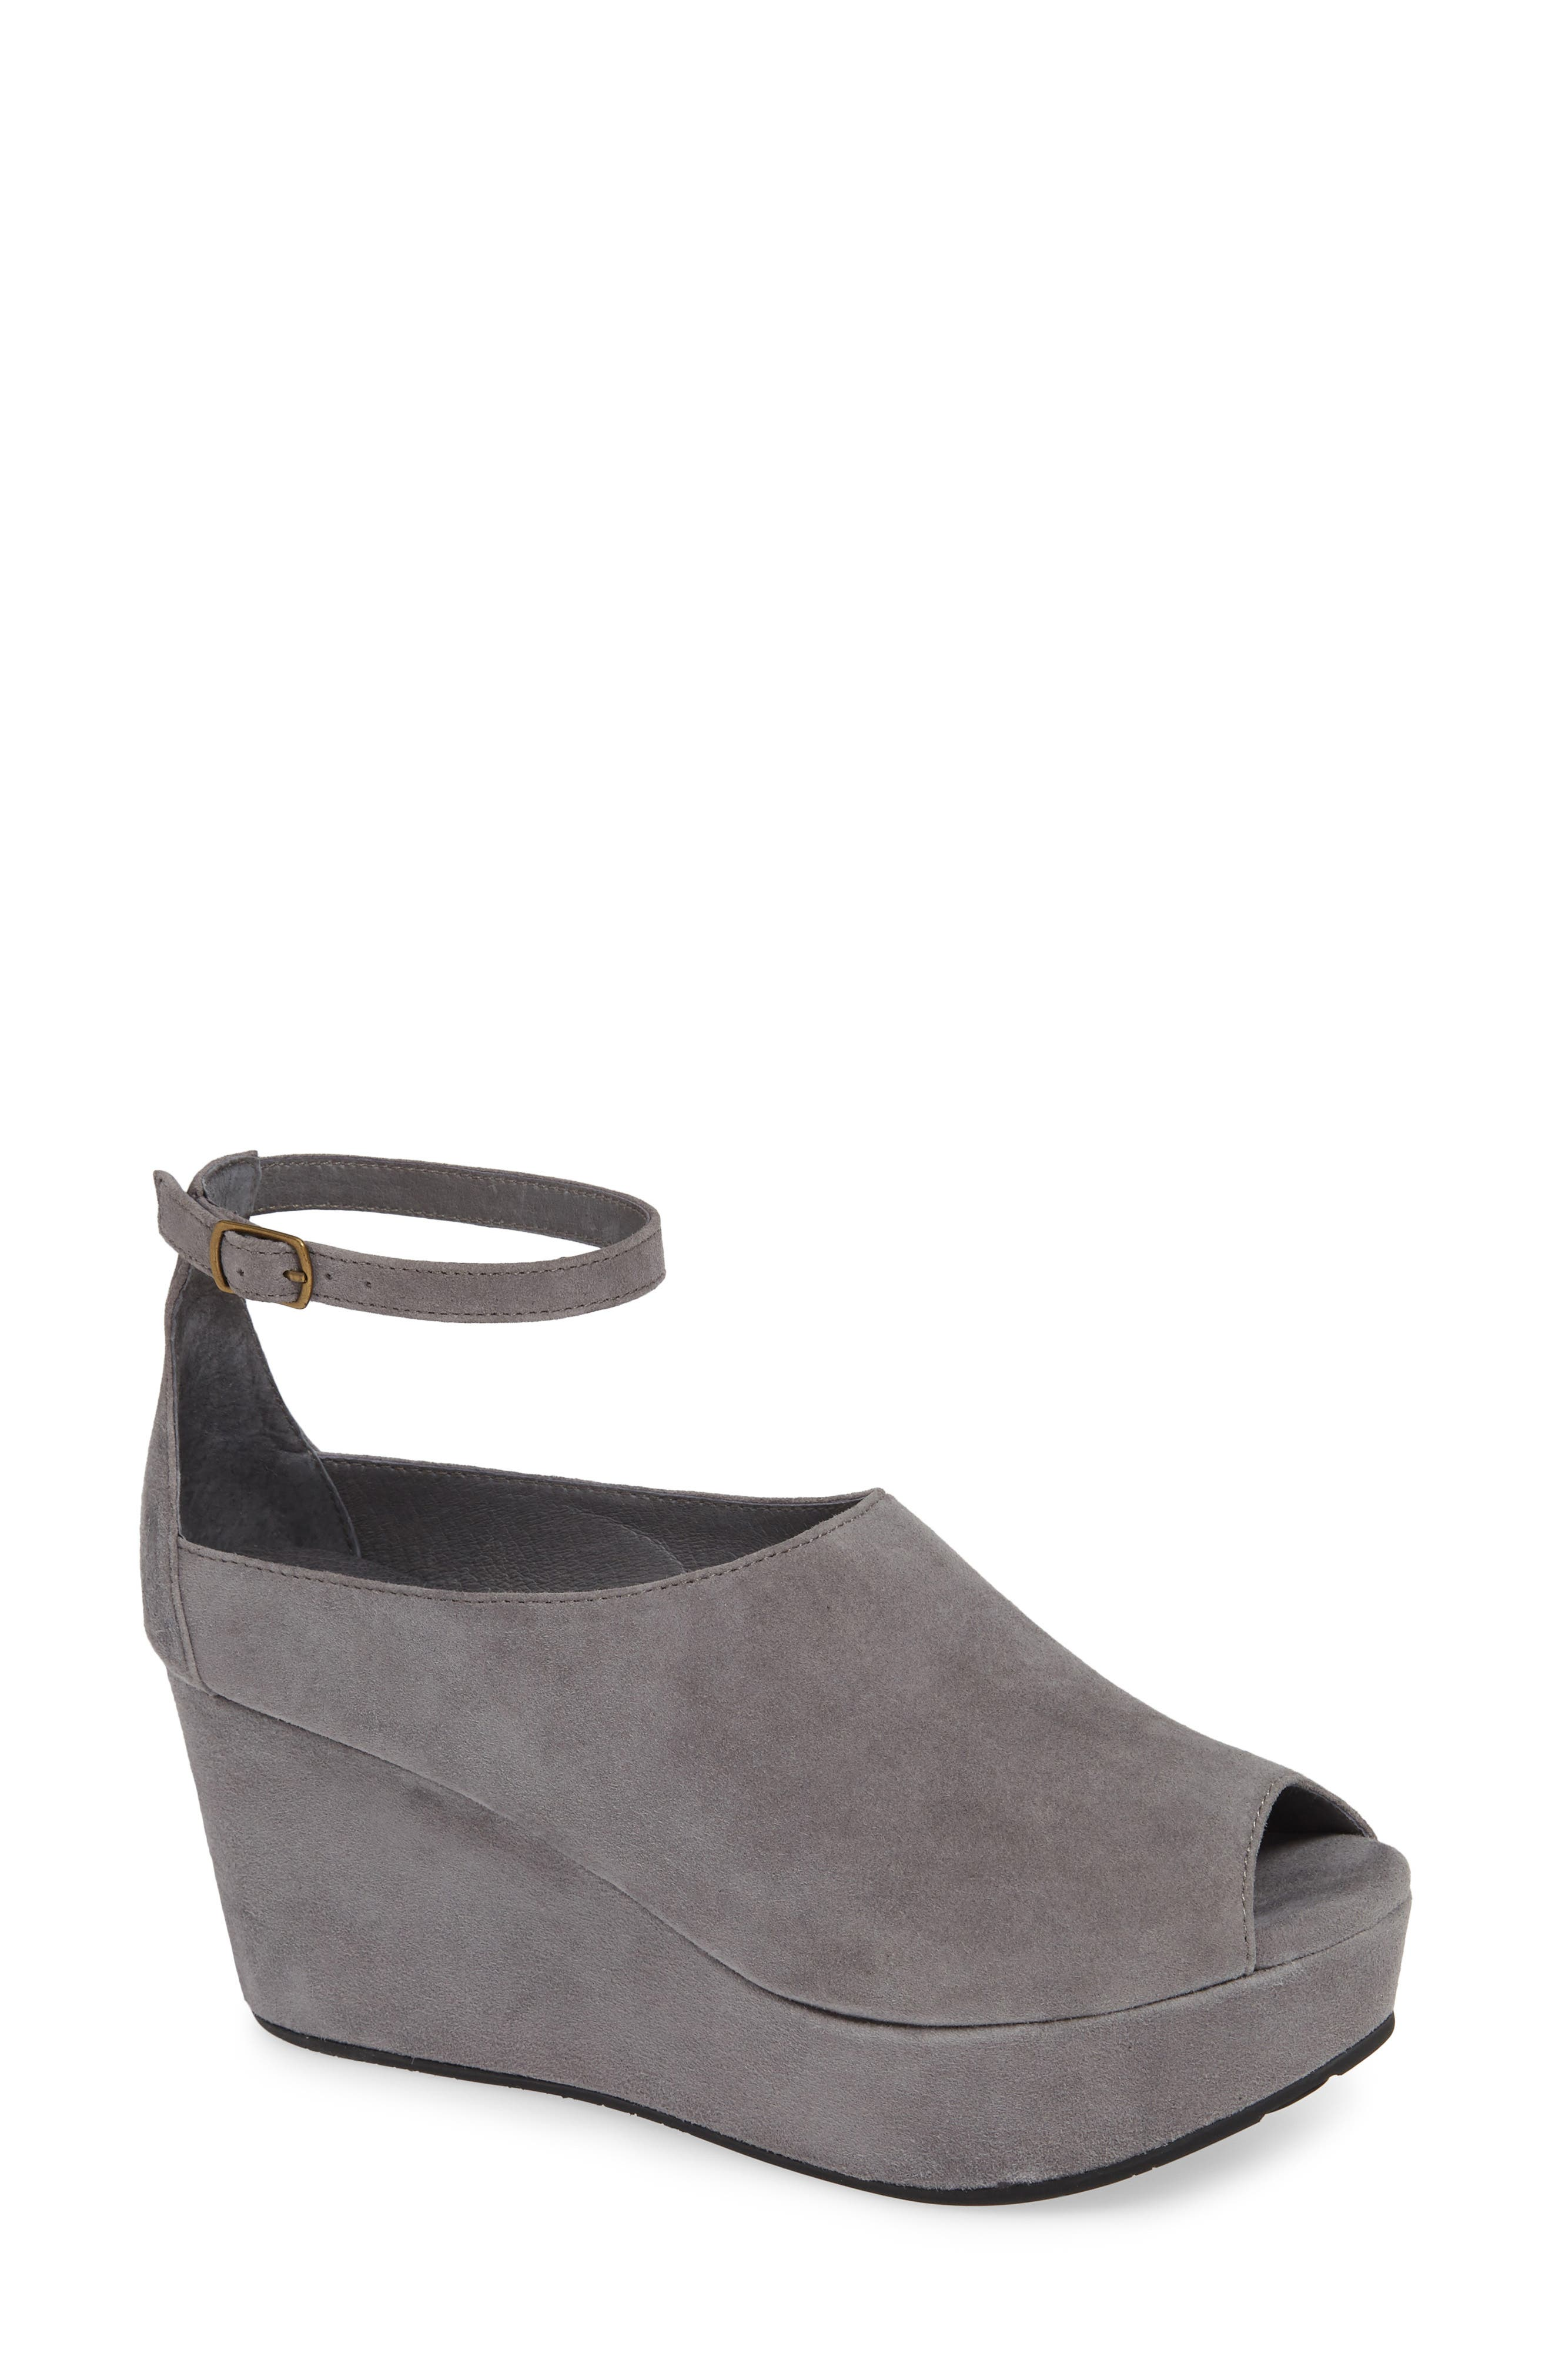 Walter Ankle Strap Wedge Sandal,                             Main thumbnail 1, color,                             GREY SUEDE